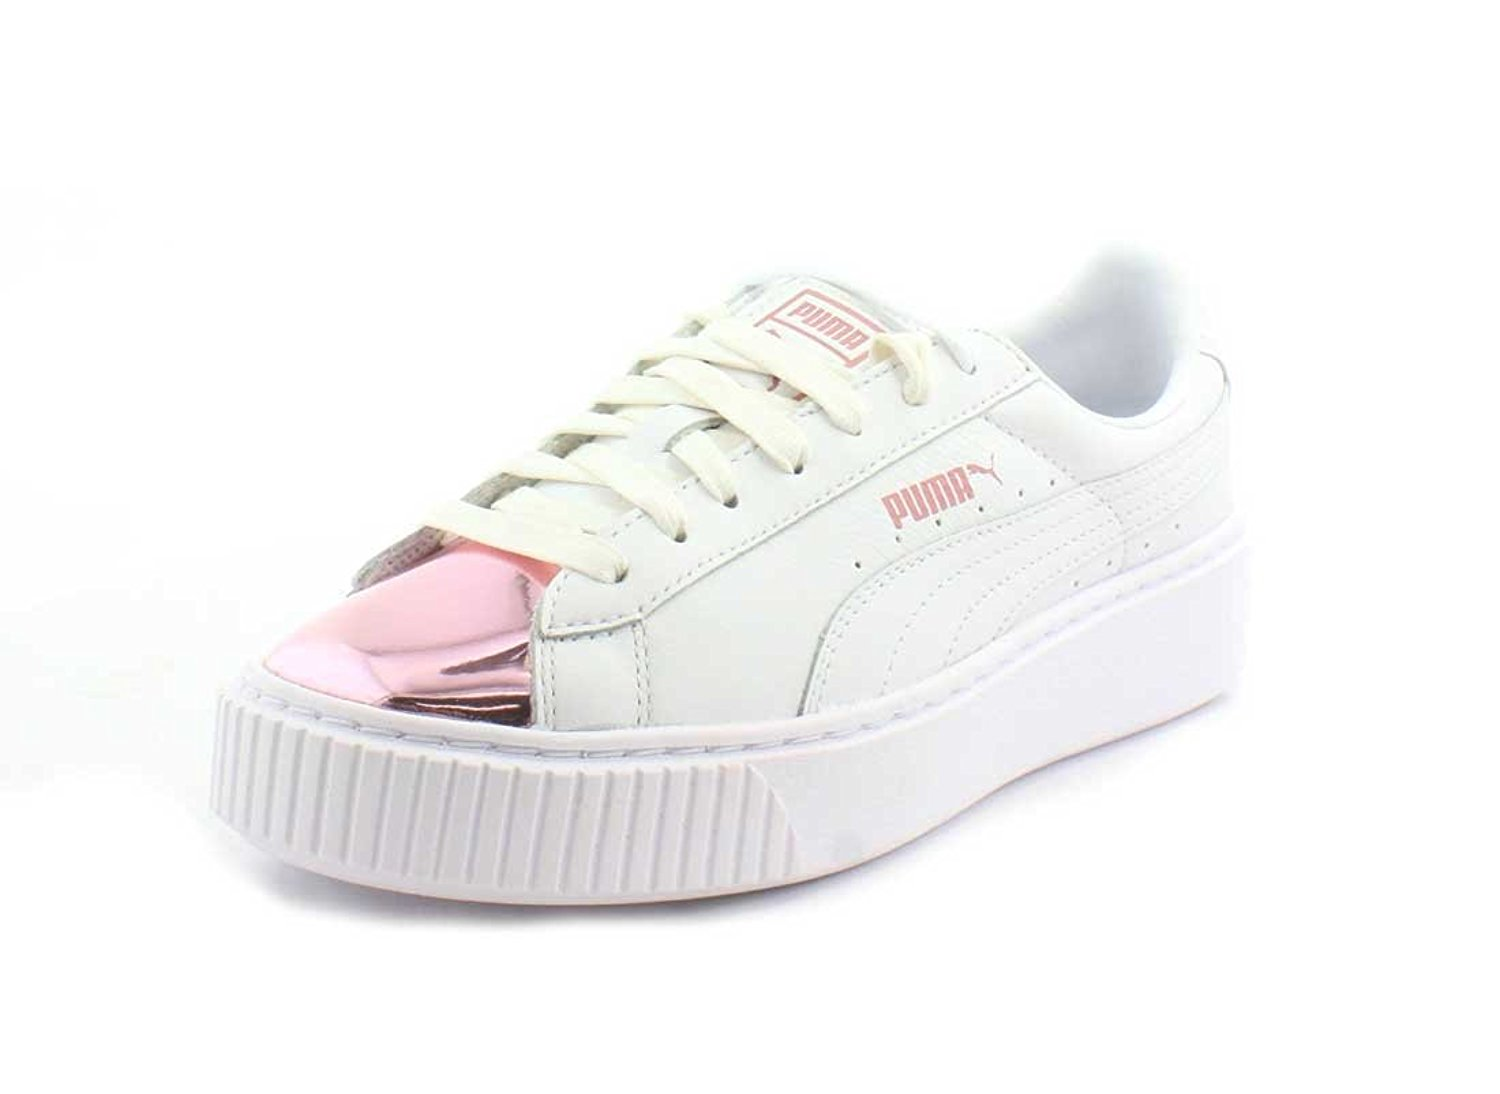 45de957e735b59 PUMA Women s Basket Platform Metallic Fashion Sneaker